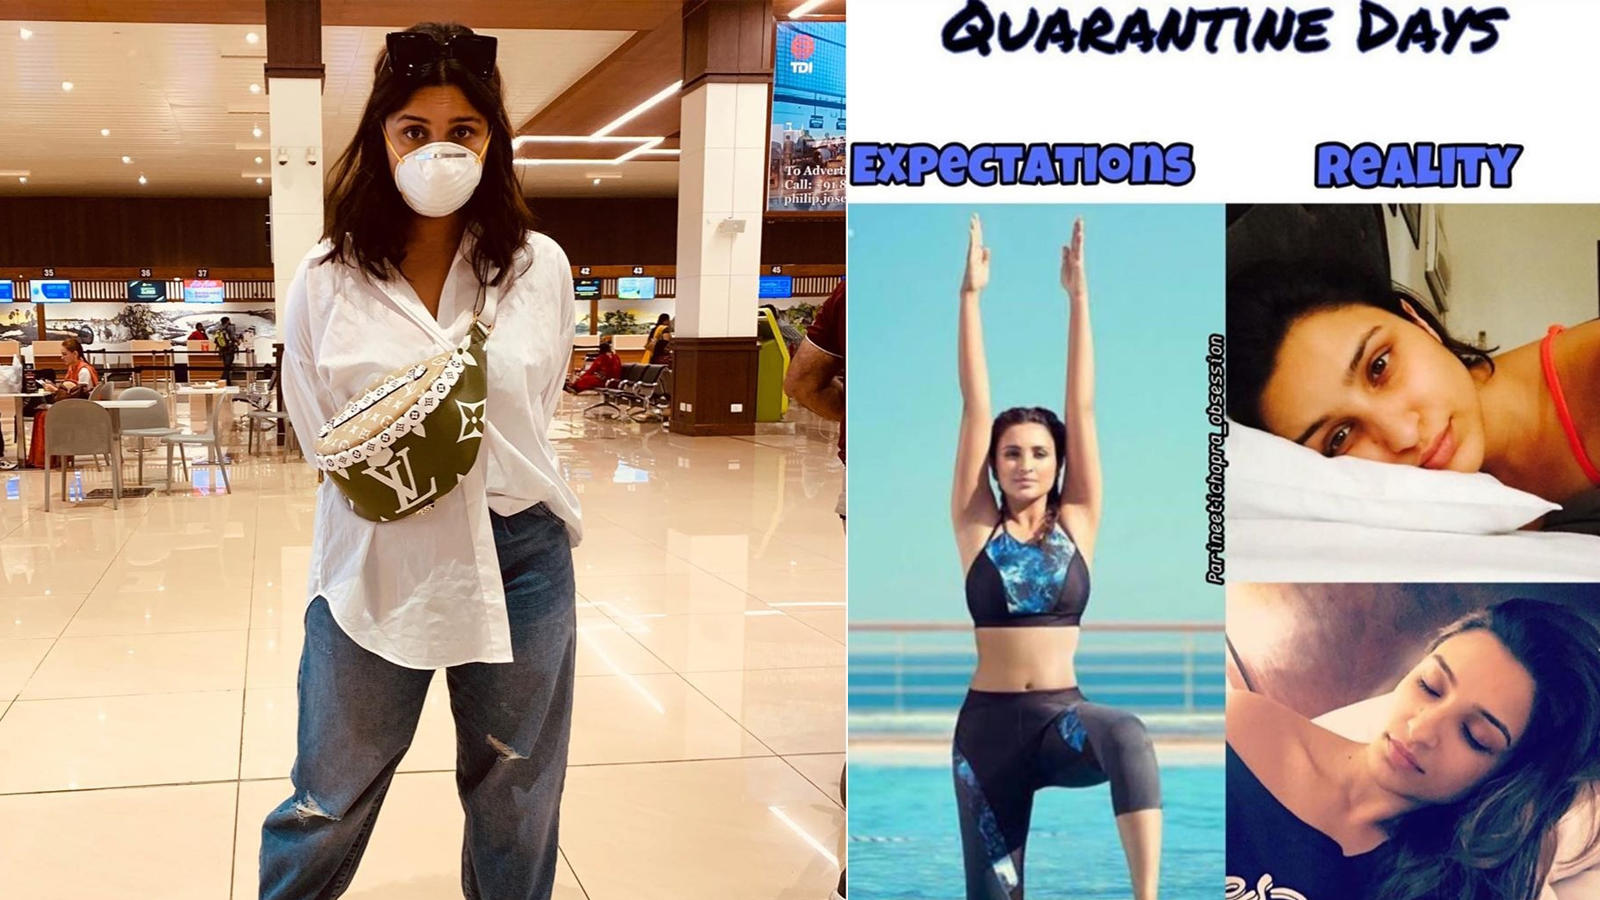 parineeti-chopras-hilarious-expectation-vs-reality-post-is-something-we-can-all-relate-to